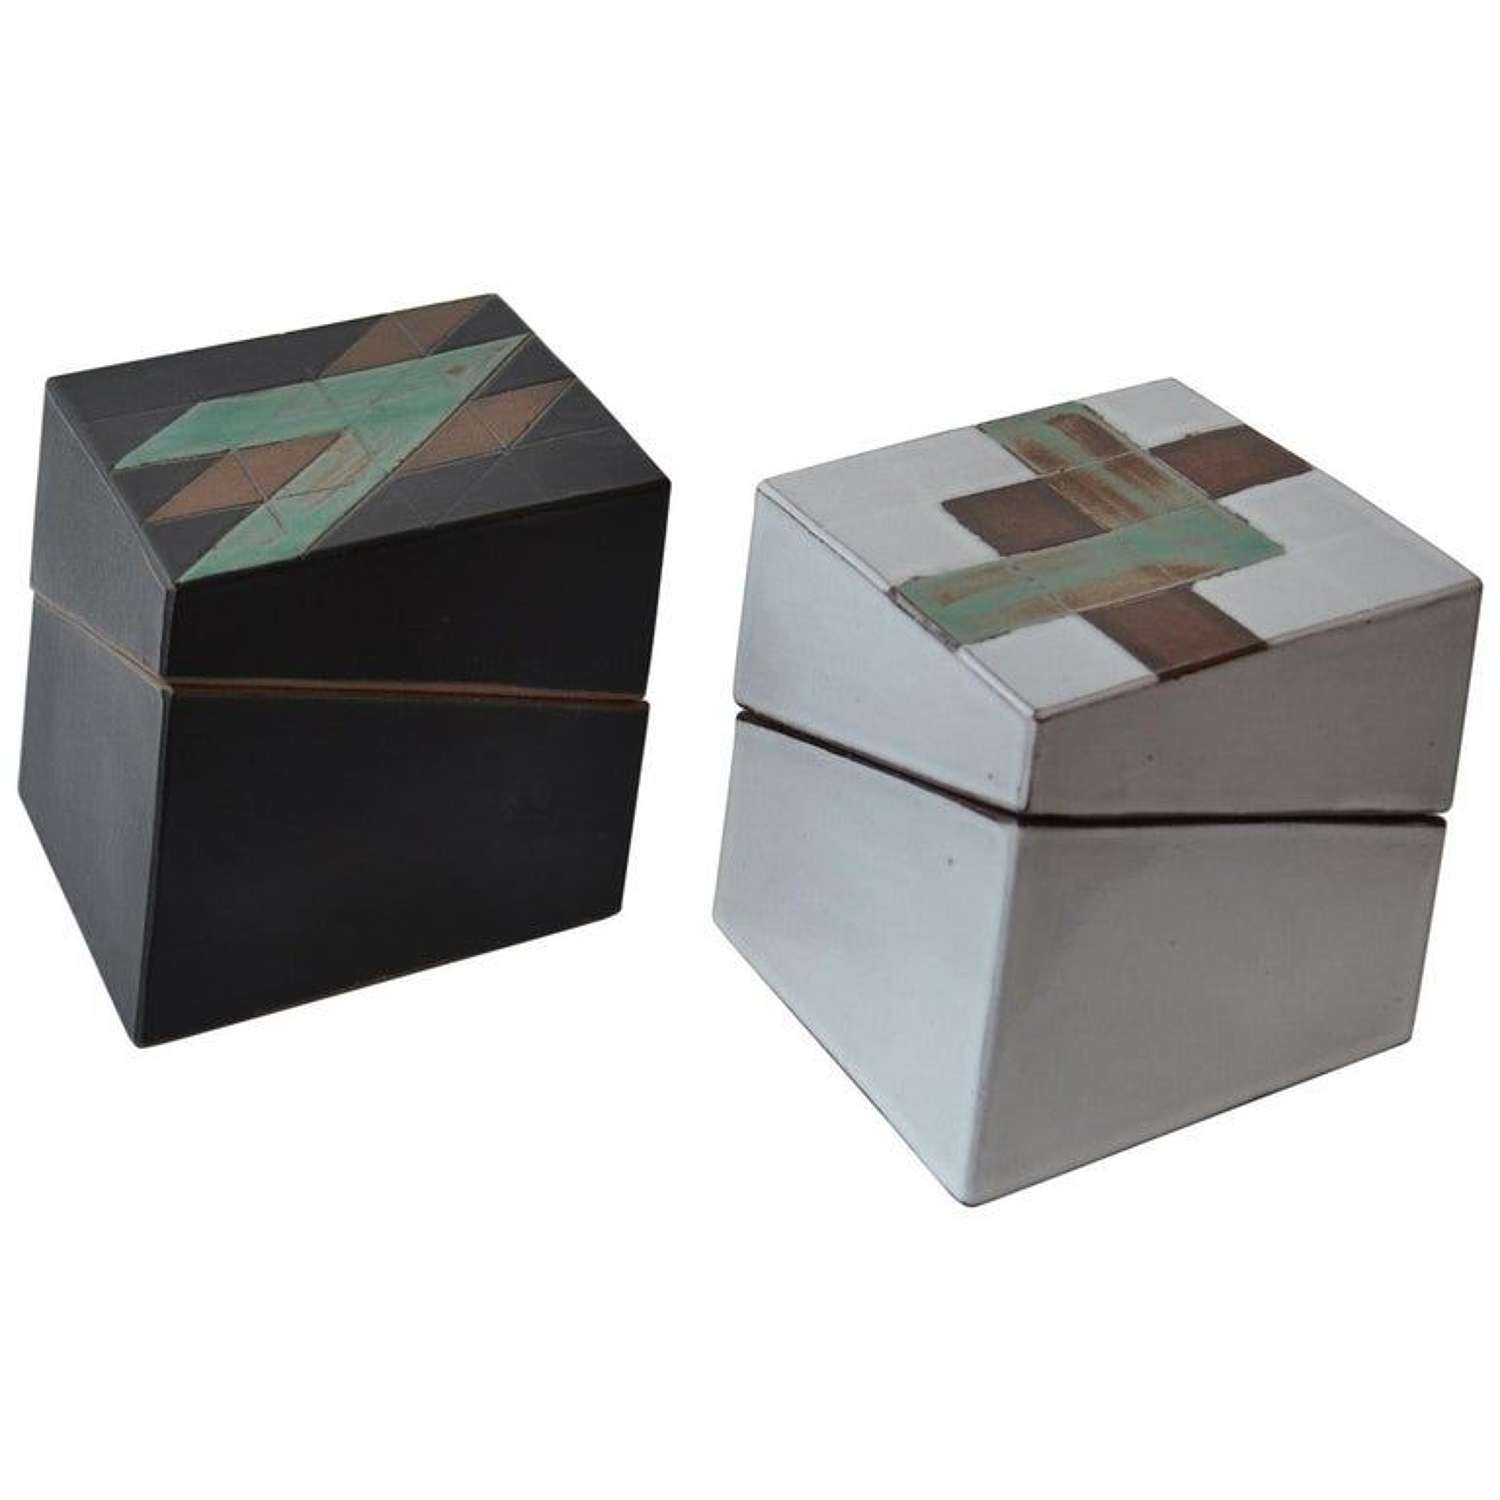 Pair of Square Studio Pottery Boxes in Black and White